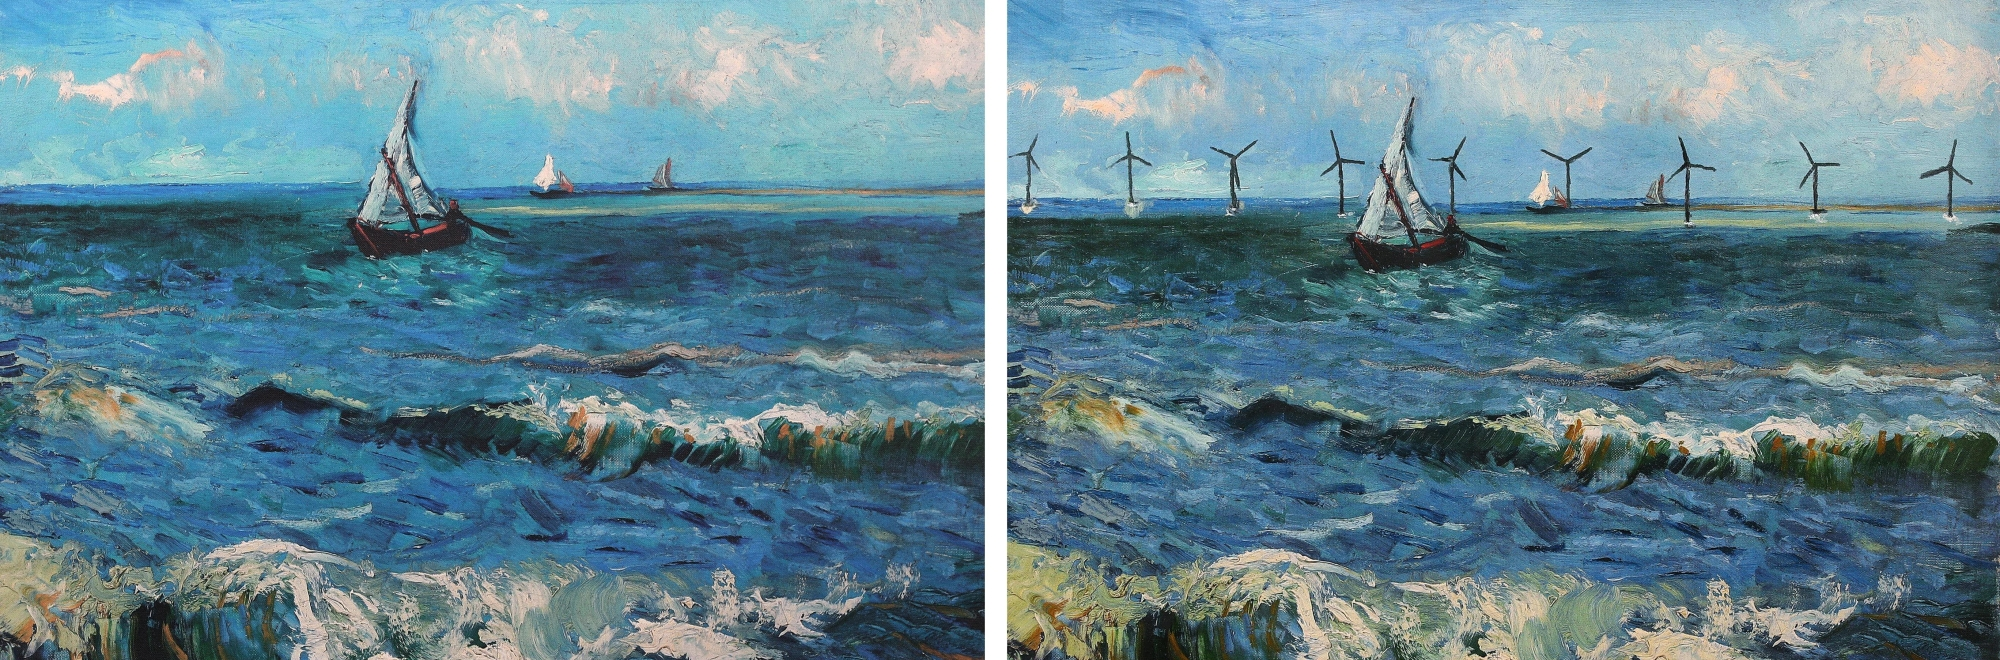 Famous paintings in history reimagined to reflect the possibilities of a zero carbon shipping industry